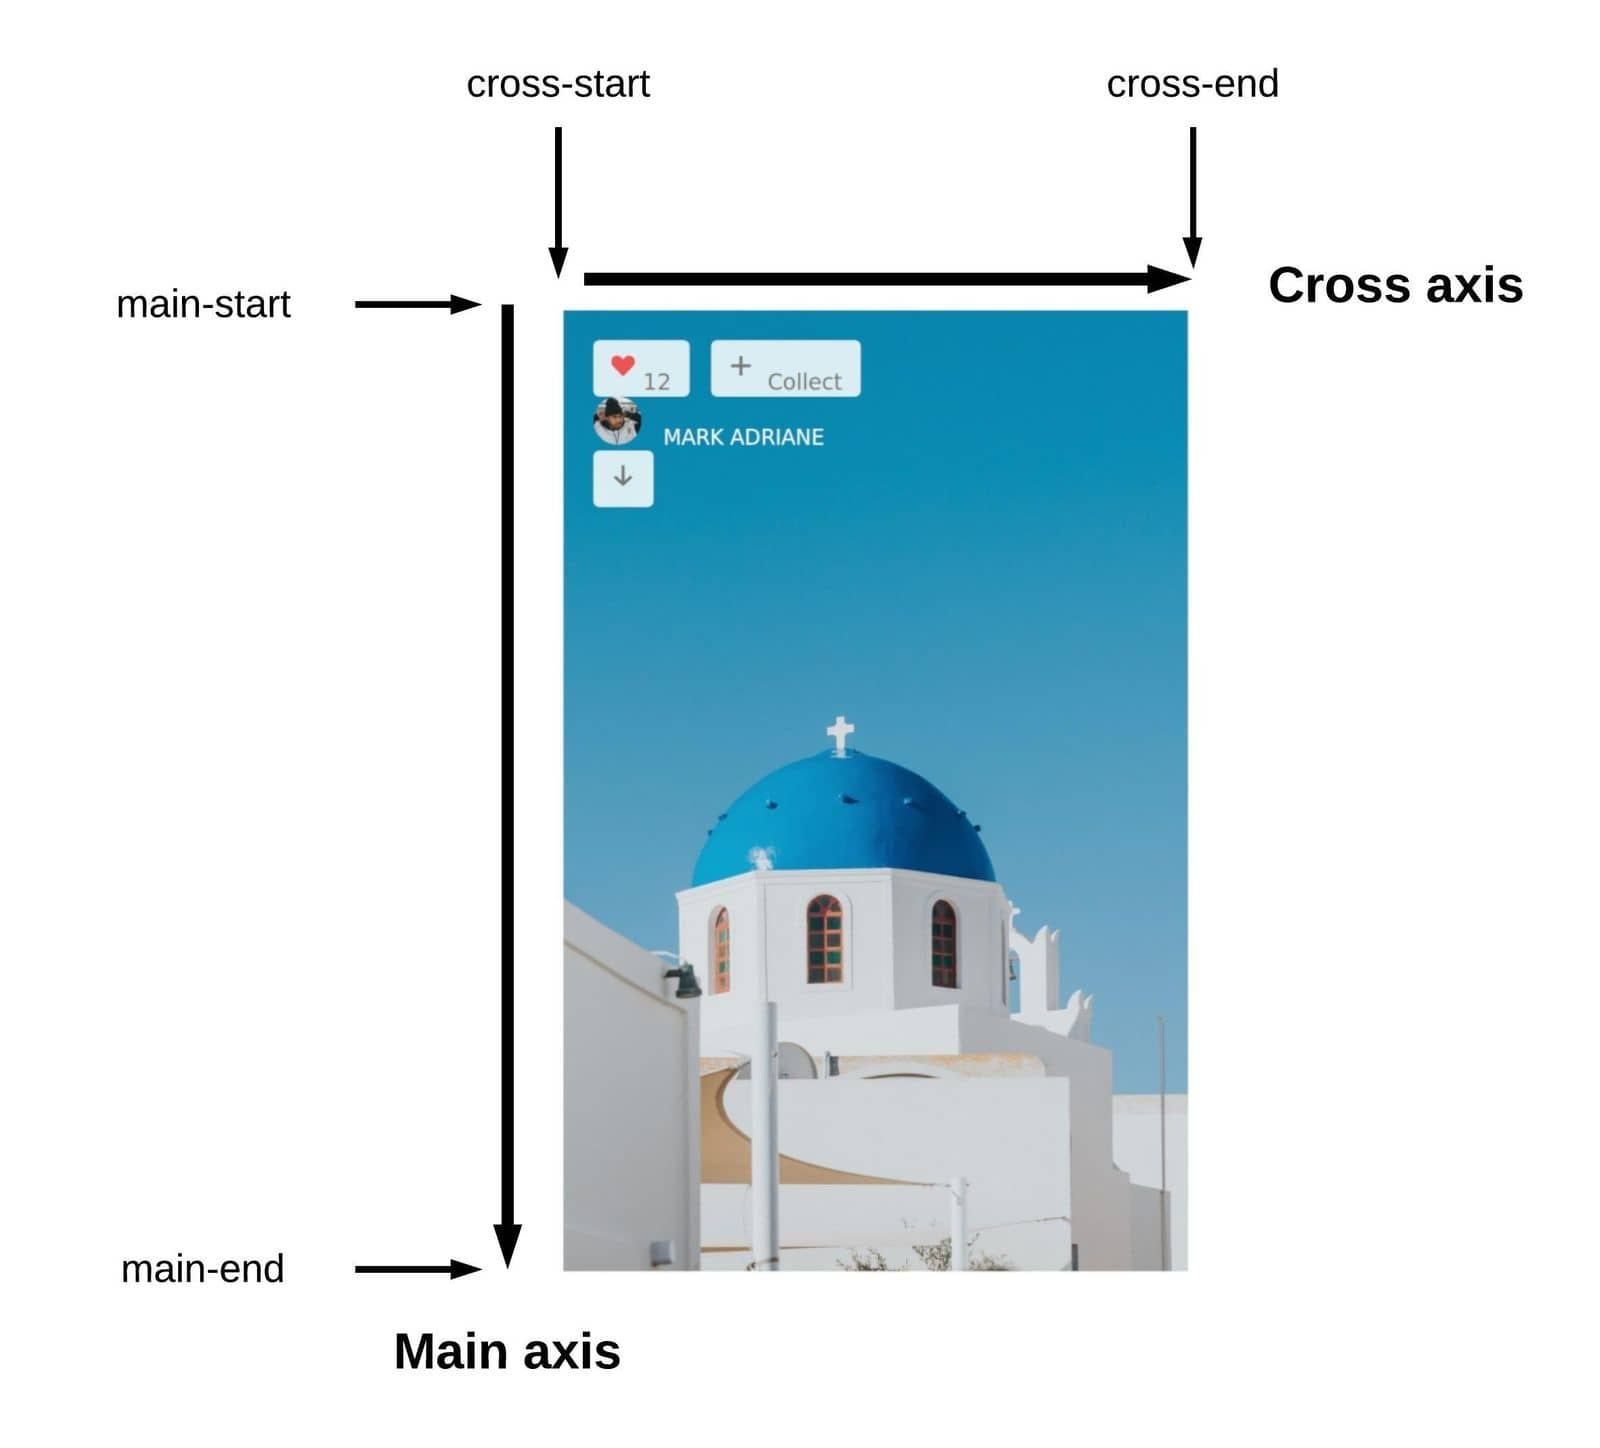 Setting flex-direction to column changes the direction of the main-axis and the cross-axis